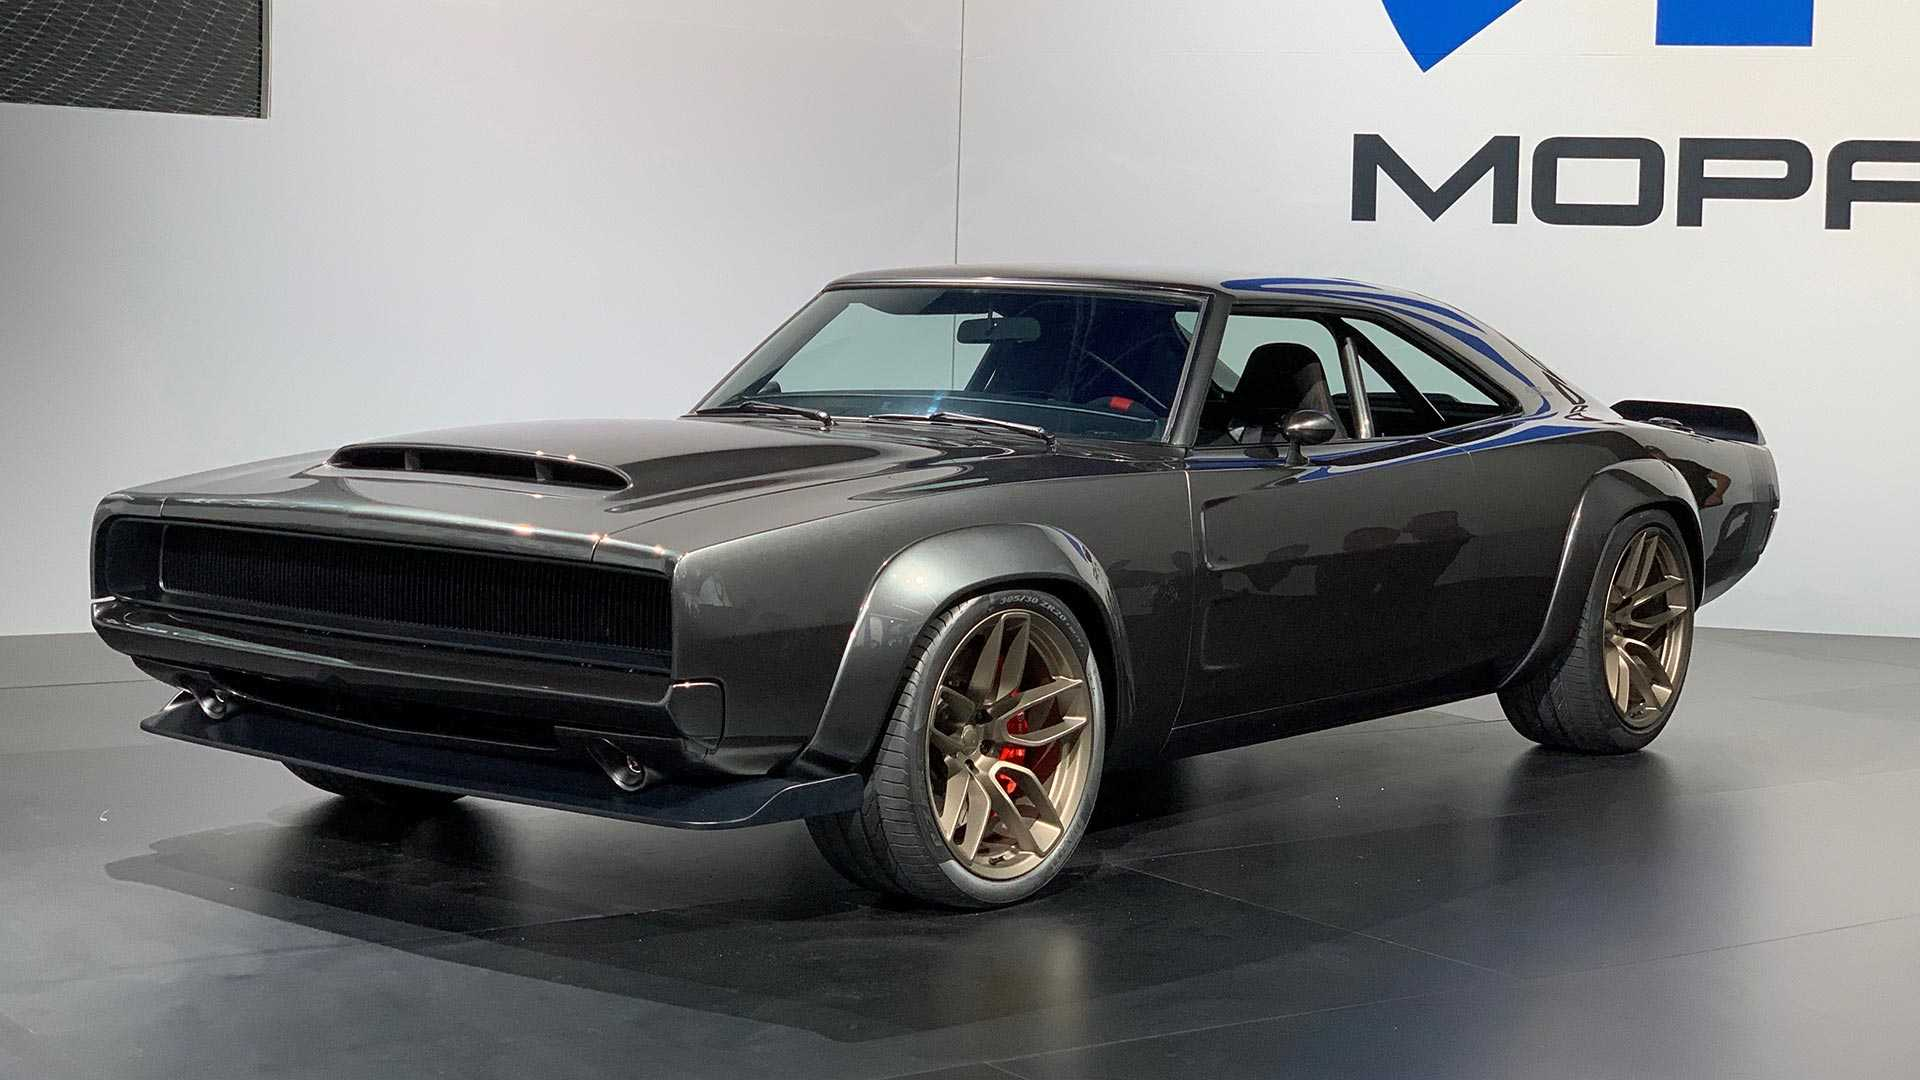 Mopar 426 Hemi Returns As A 1 000 Hp Hellephant Supercharged V8 Update